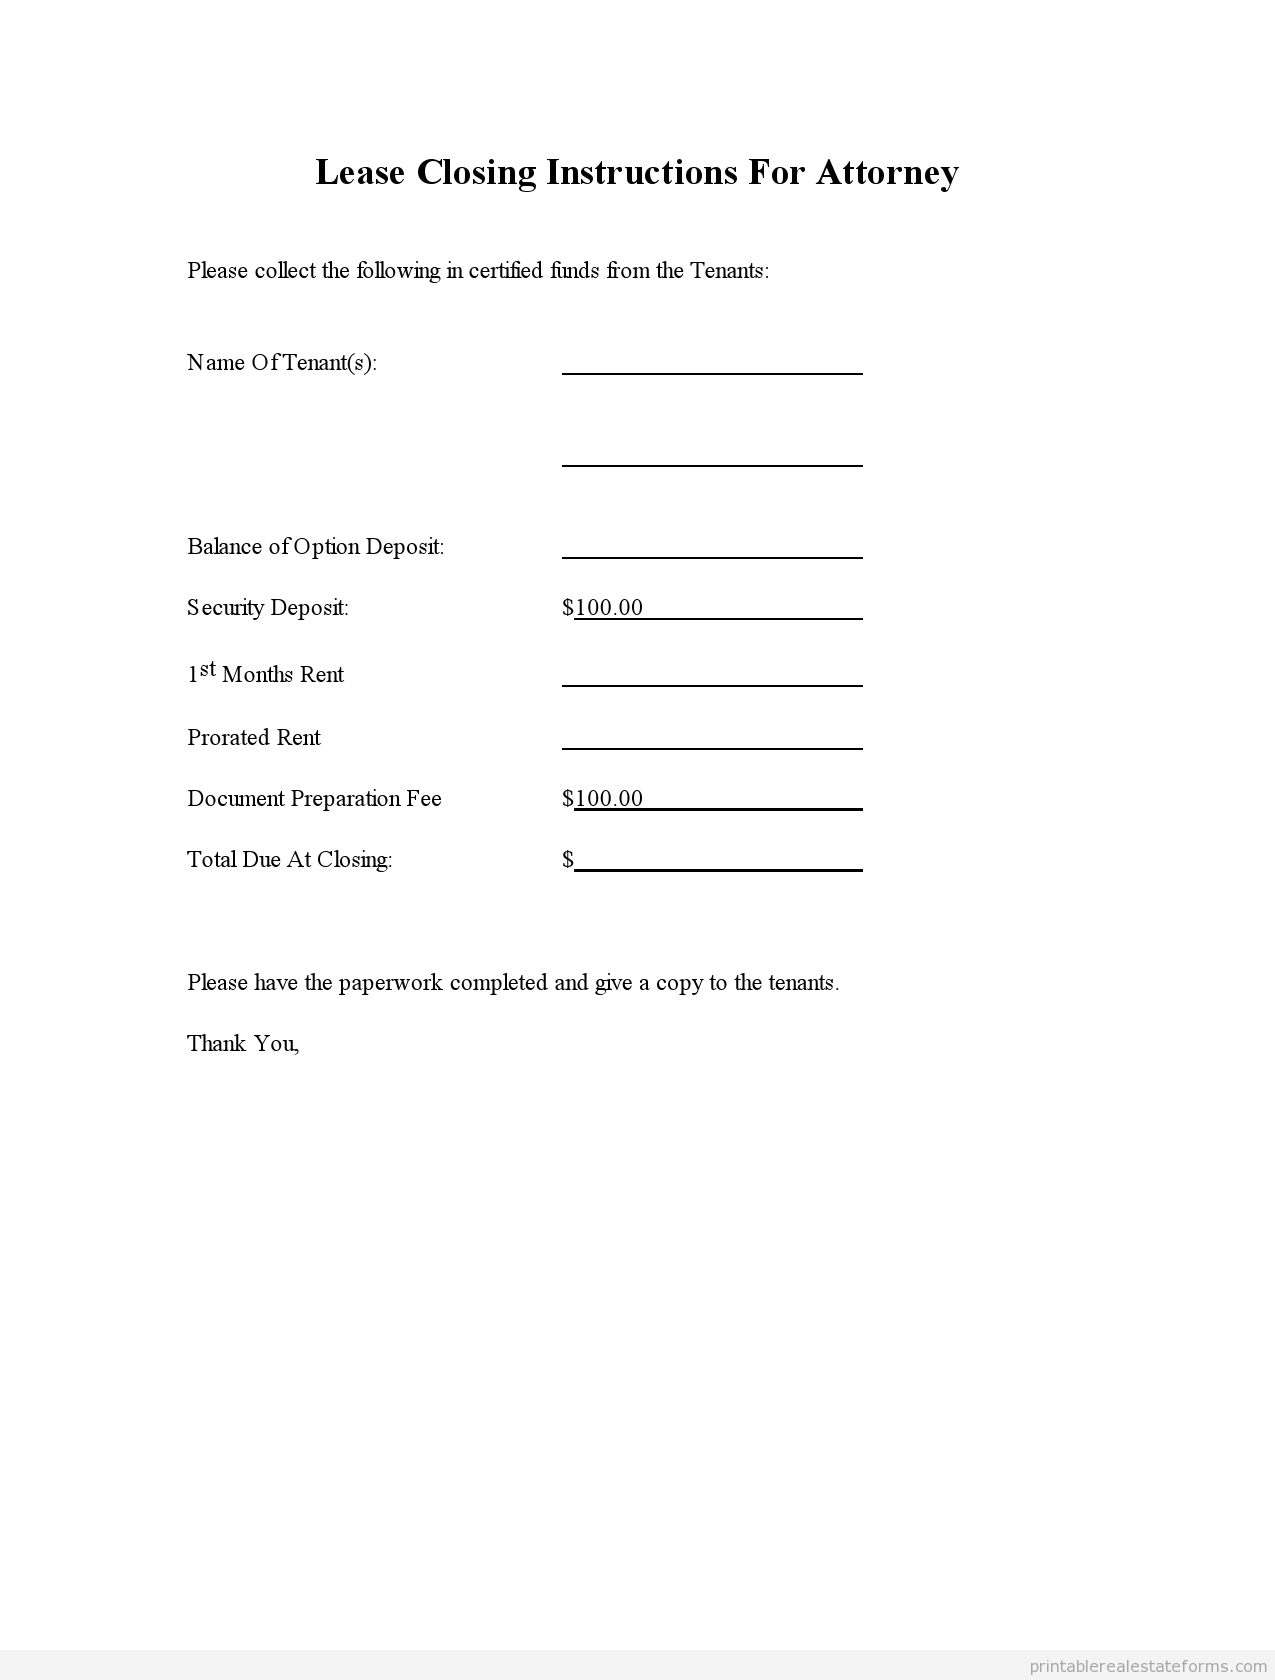 Sample Printable Lease Closing Instructions For Attorney Form